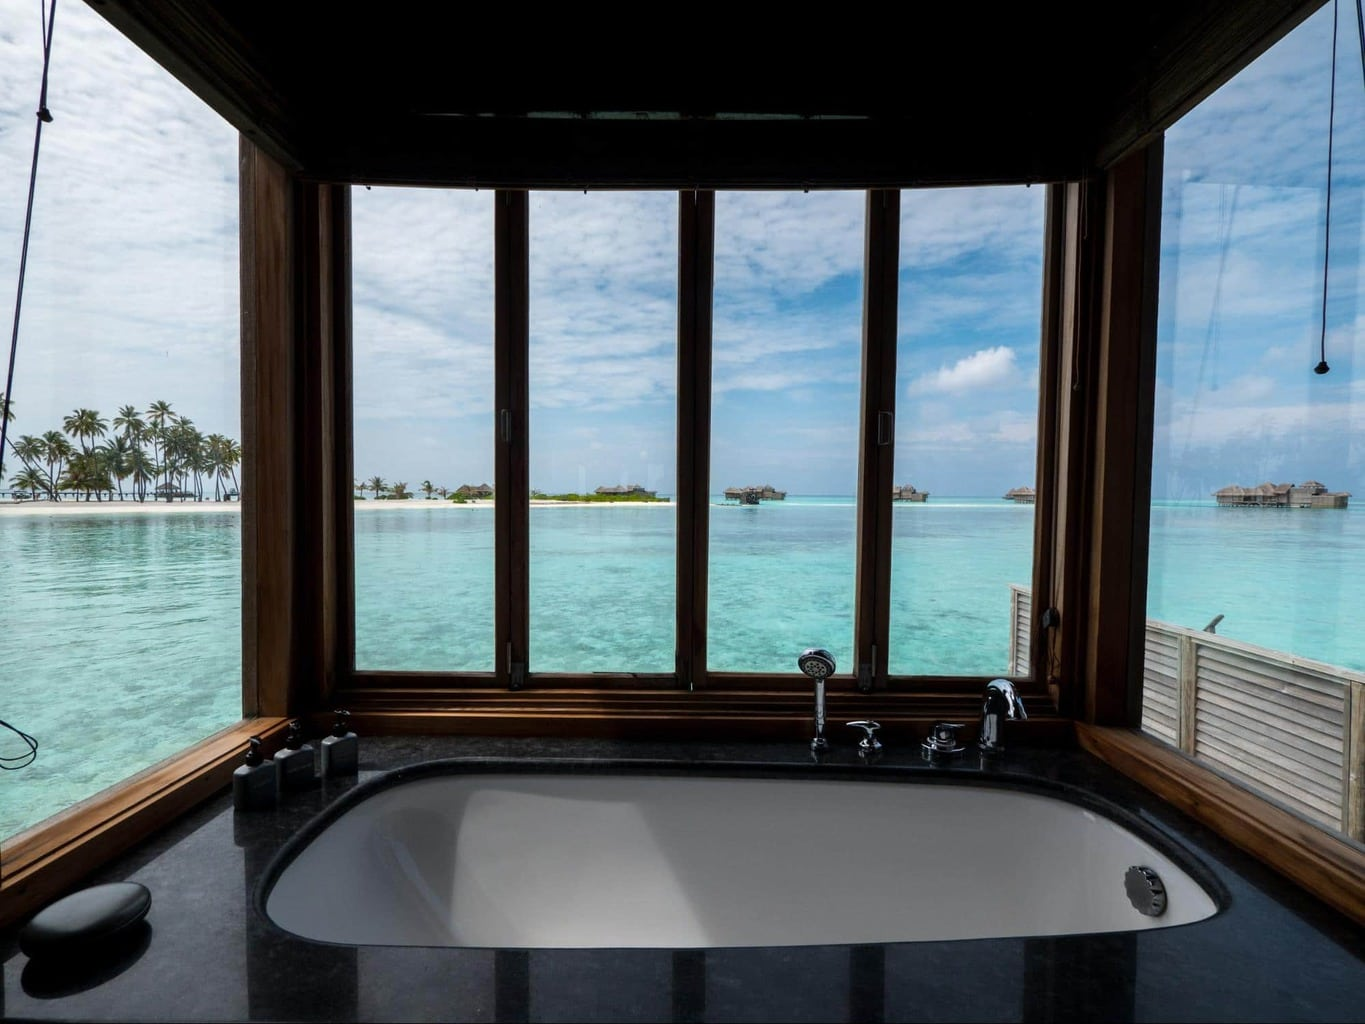 Bathroom at Gili Lankanfushi 02